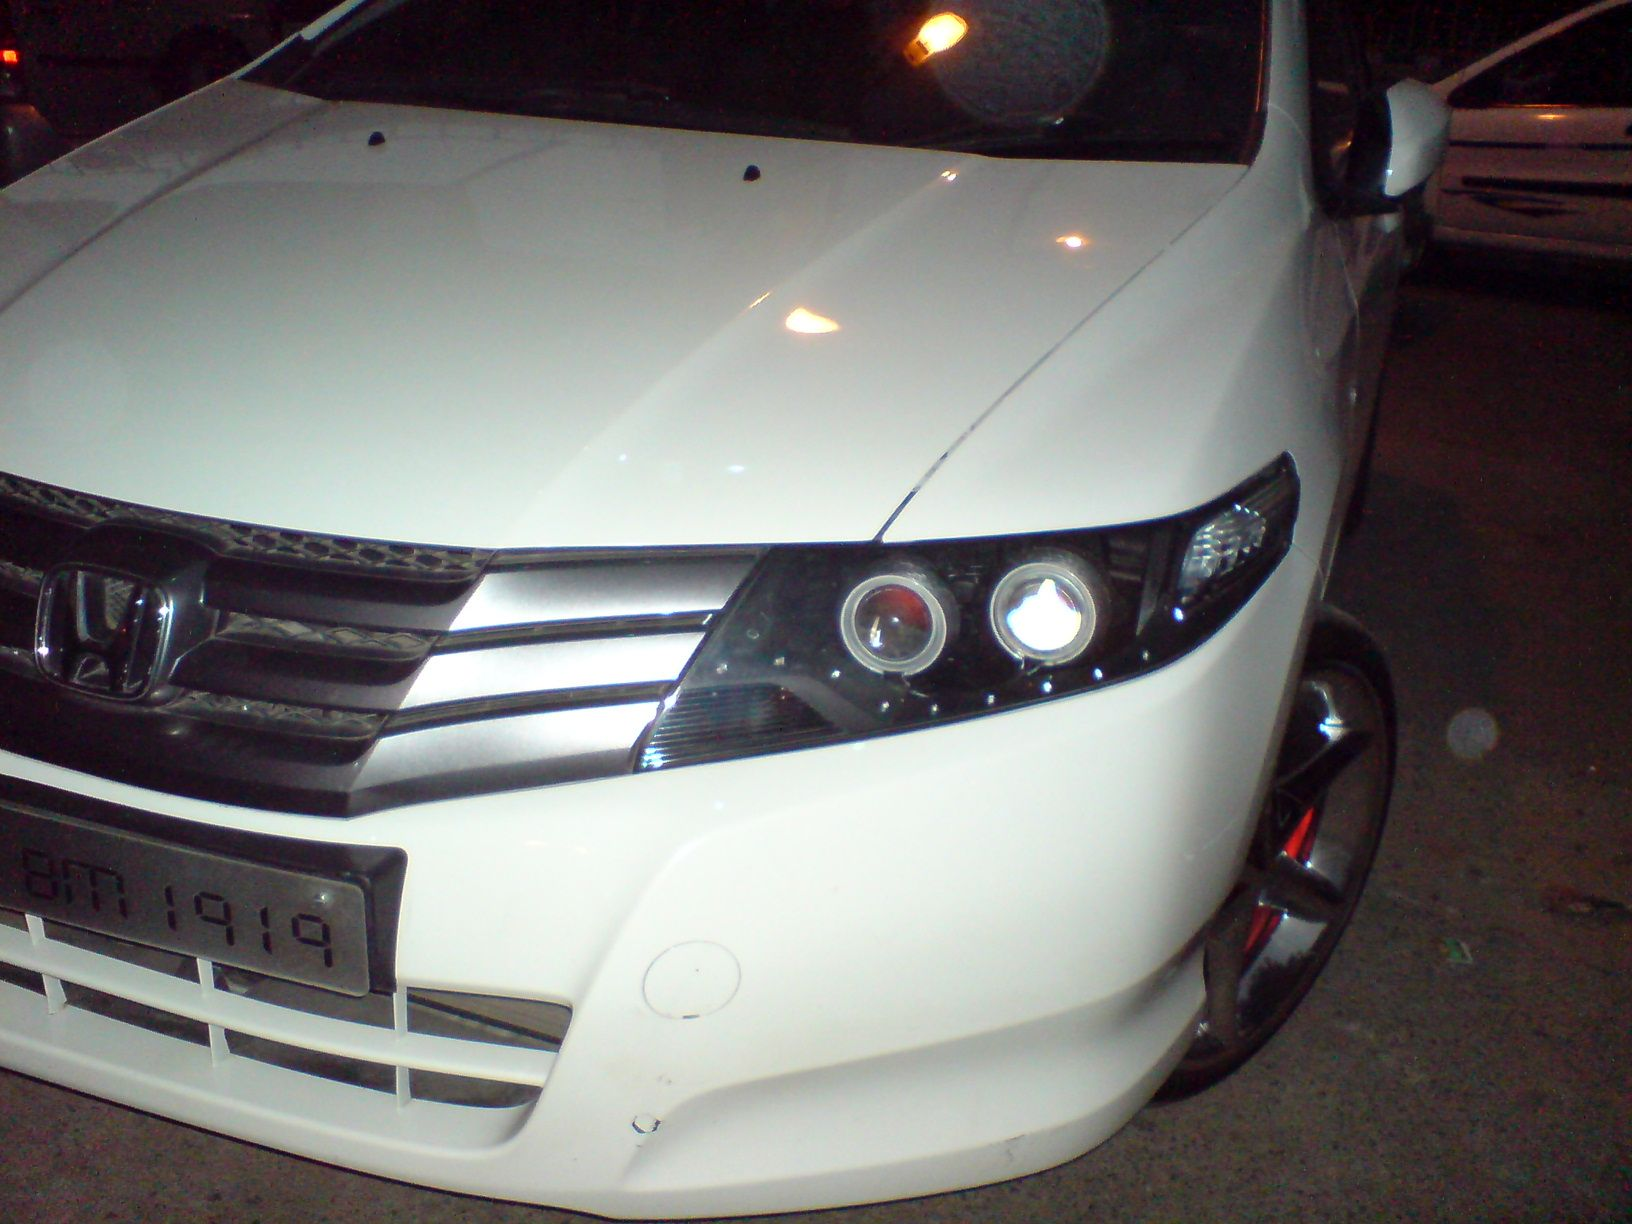 honda city ivtec customised projector headlights with projector angel eye and leds [ 1632 x 1224 Pixel ]